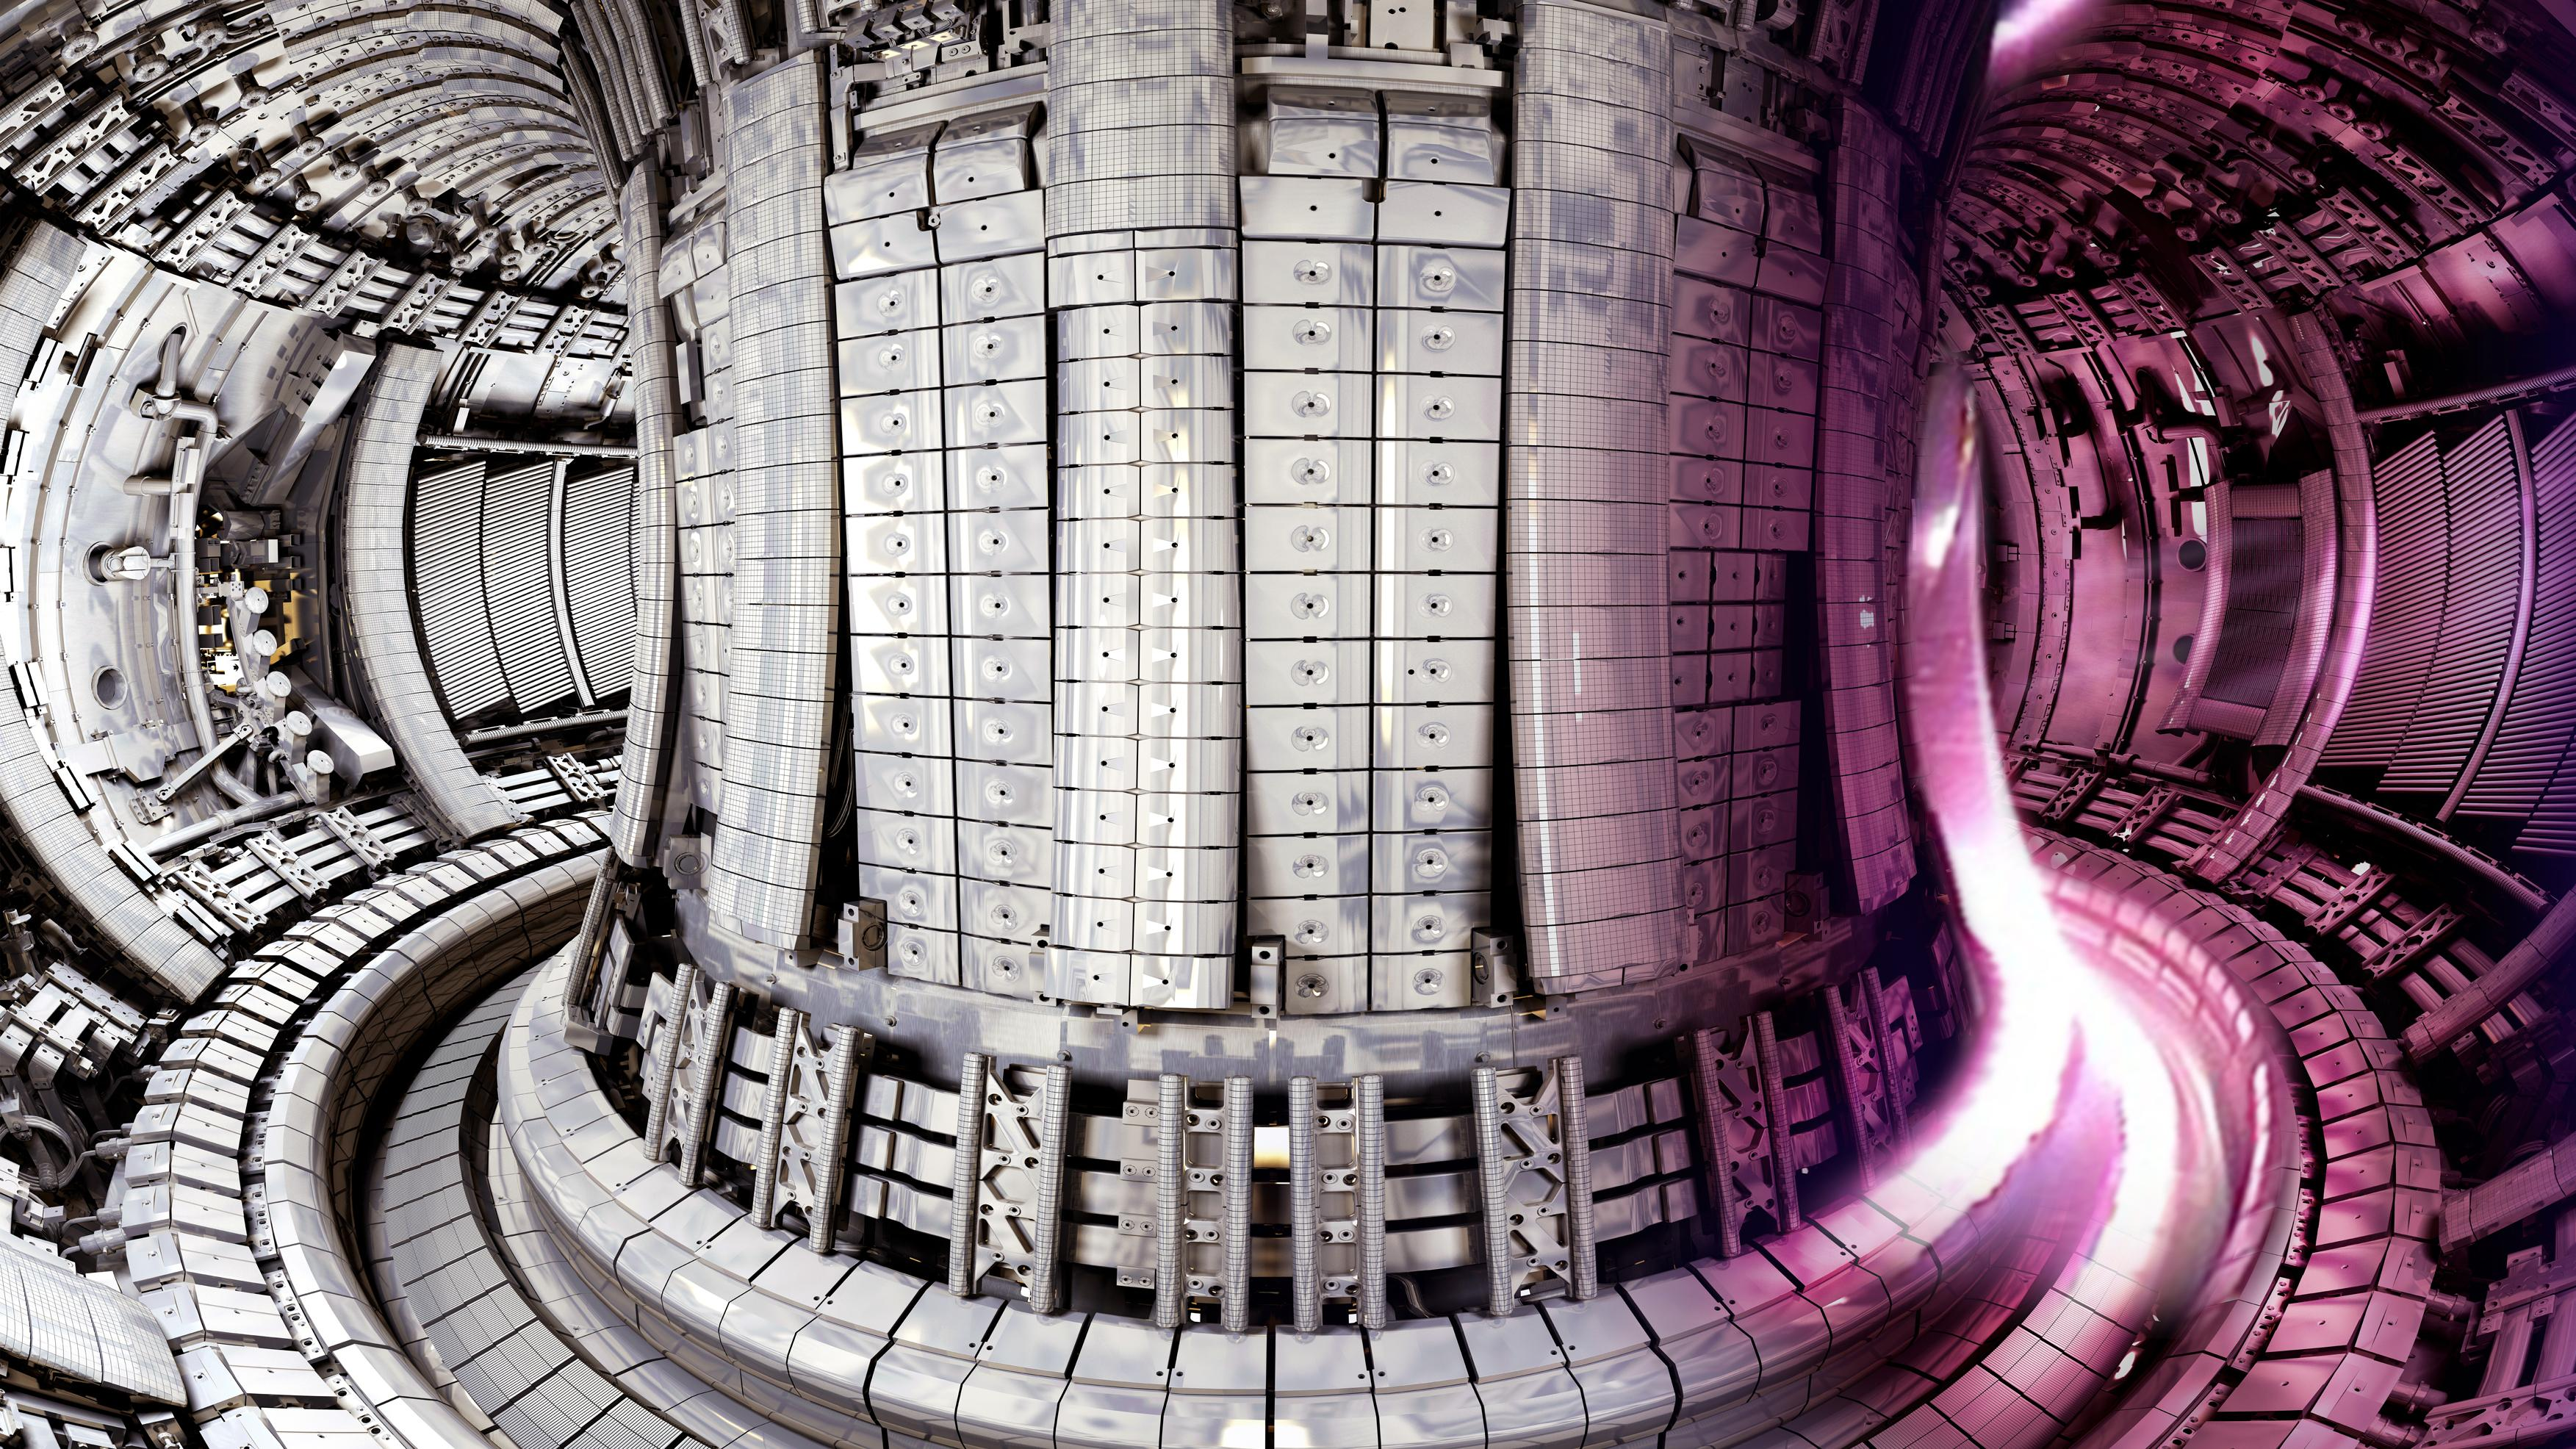 The energy problem and the nuclear fusion alternative